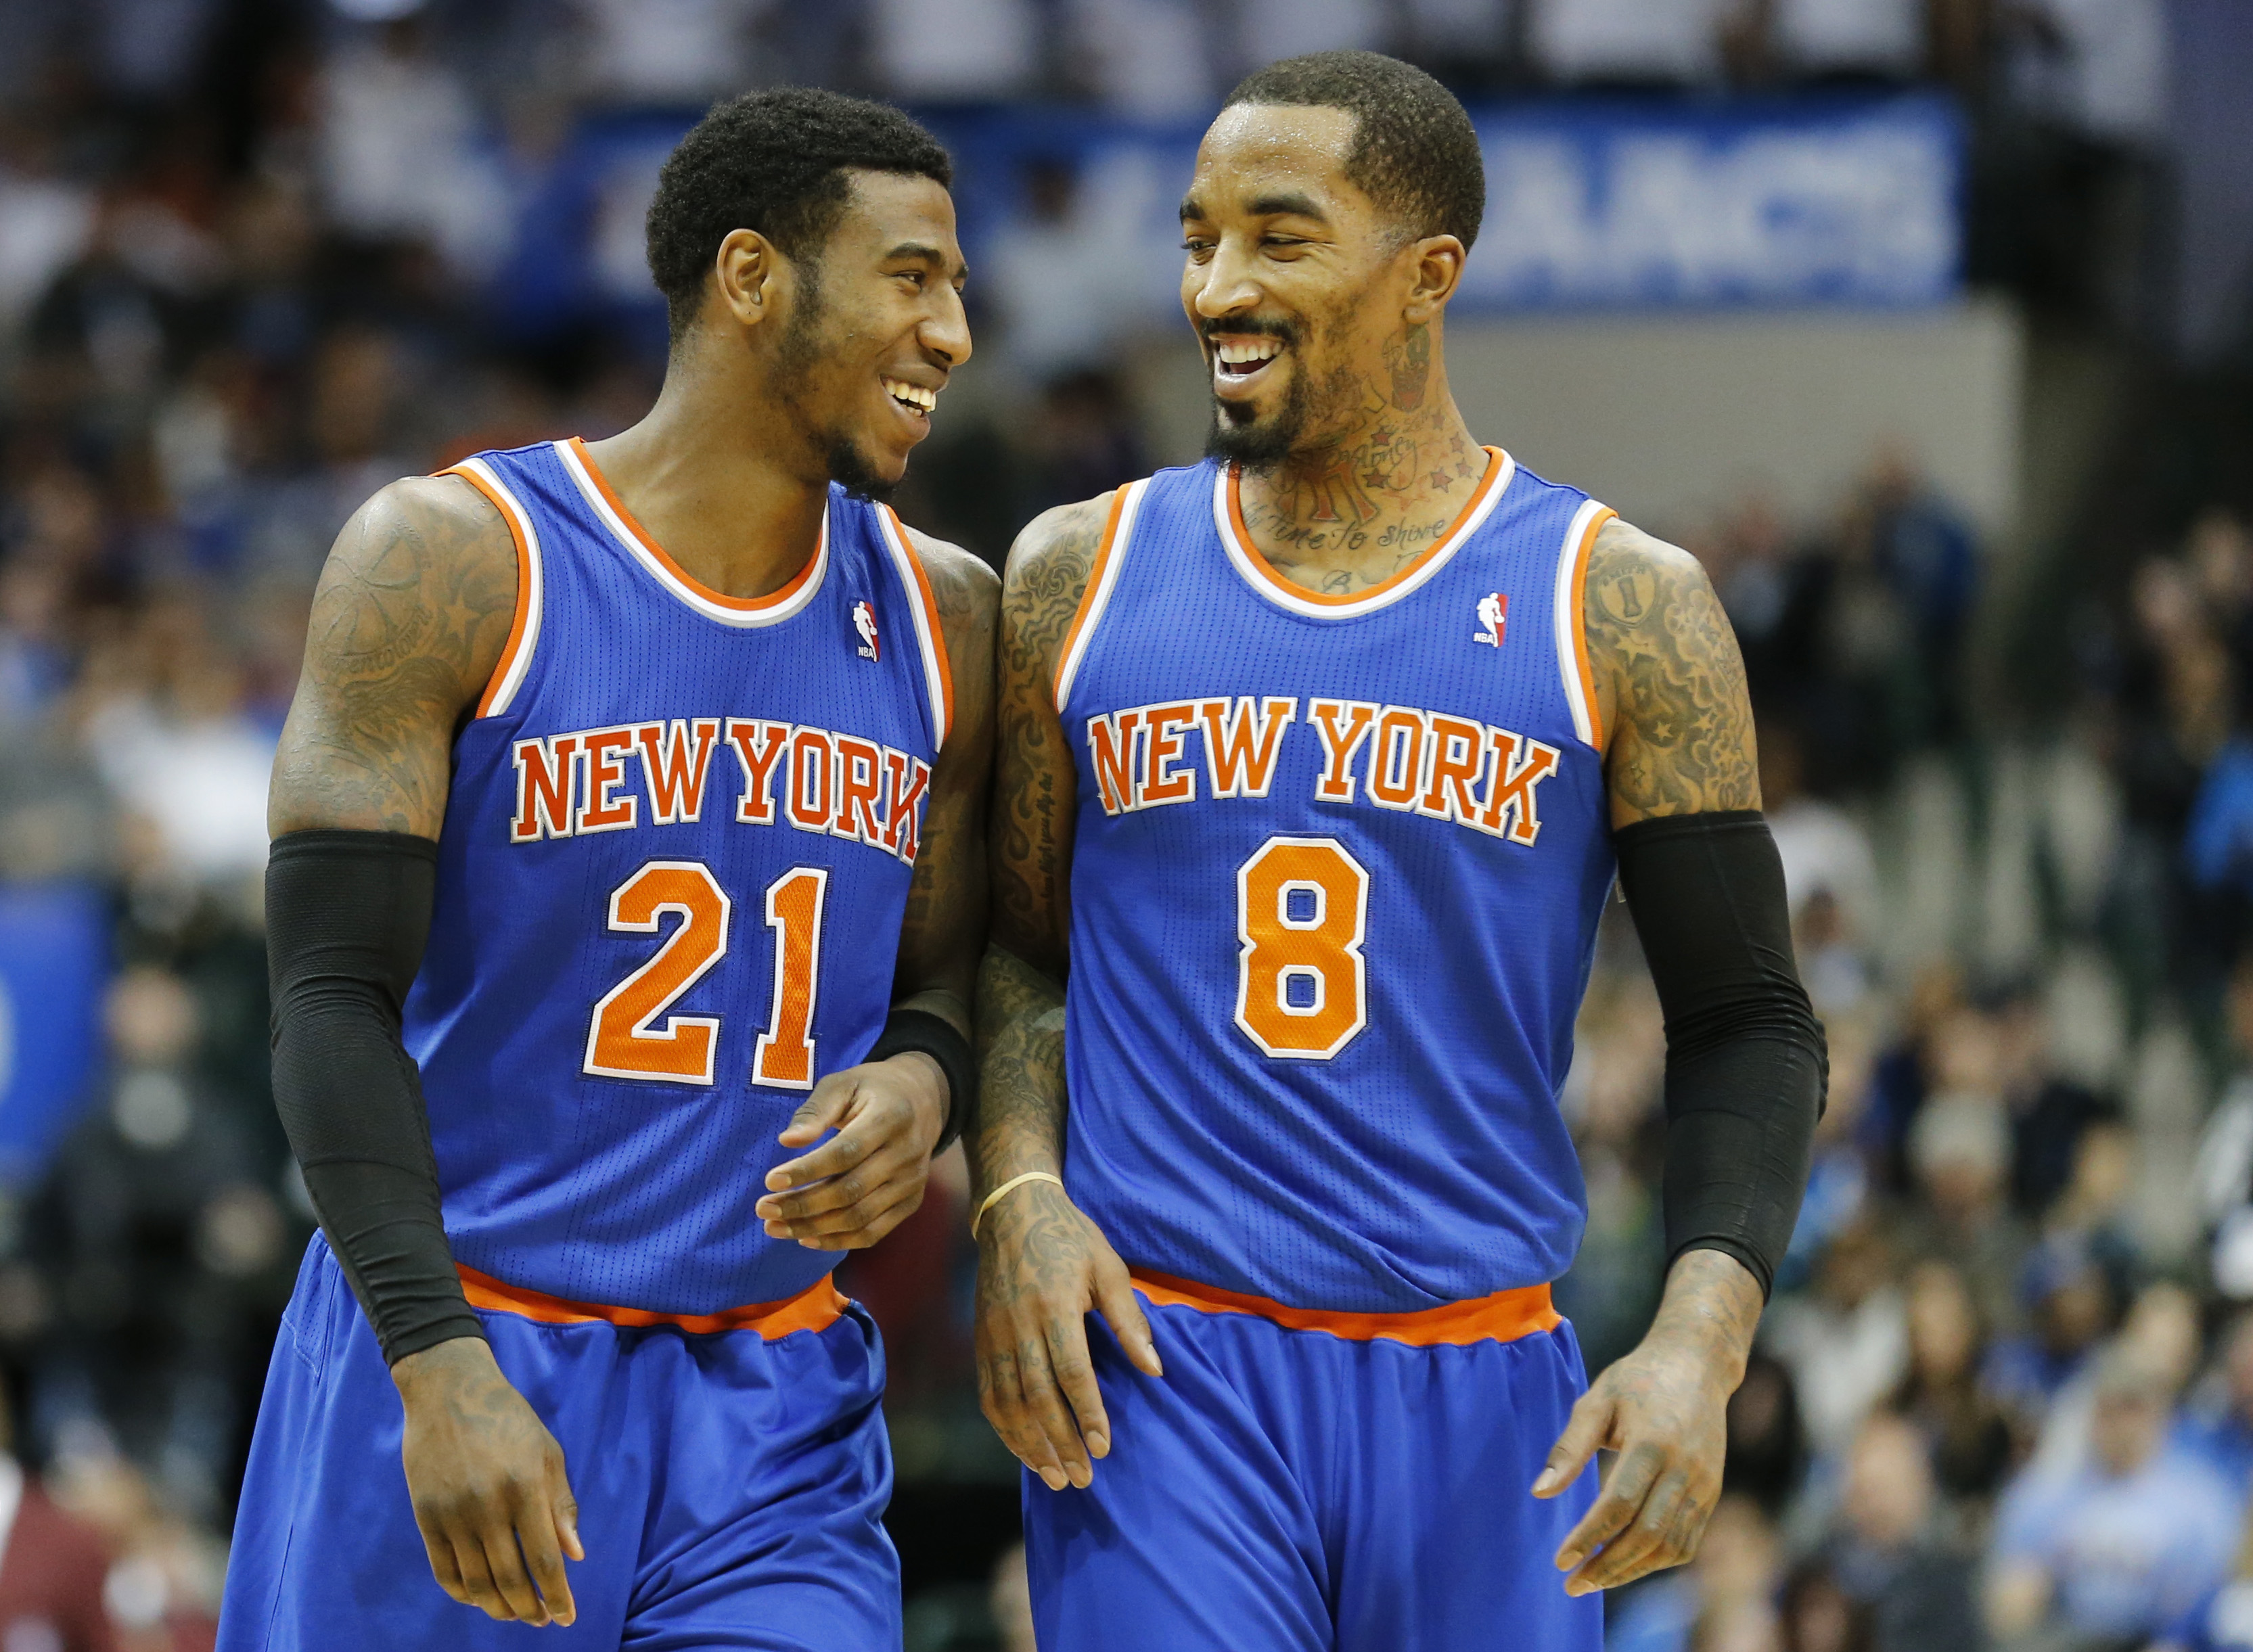 The Knicks just blew up their roster, will try to rebuild around Carmelo Anthony (AGAIN)